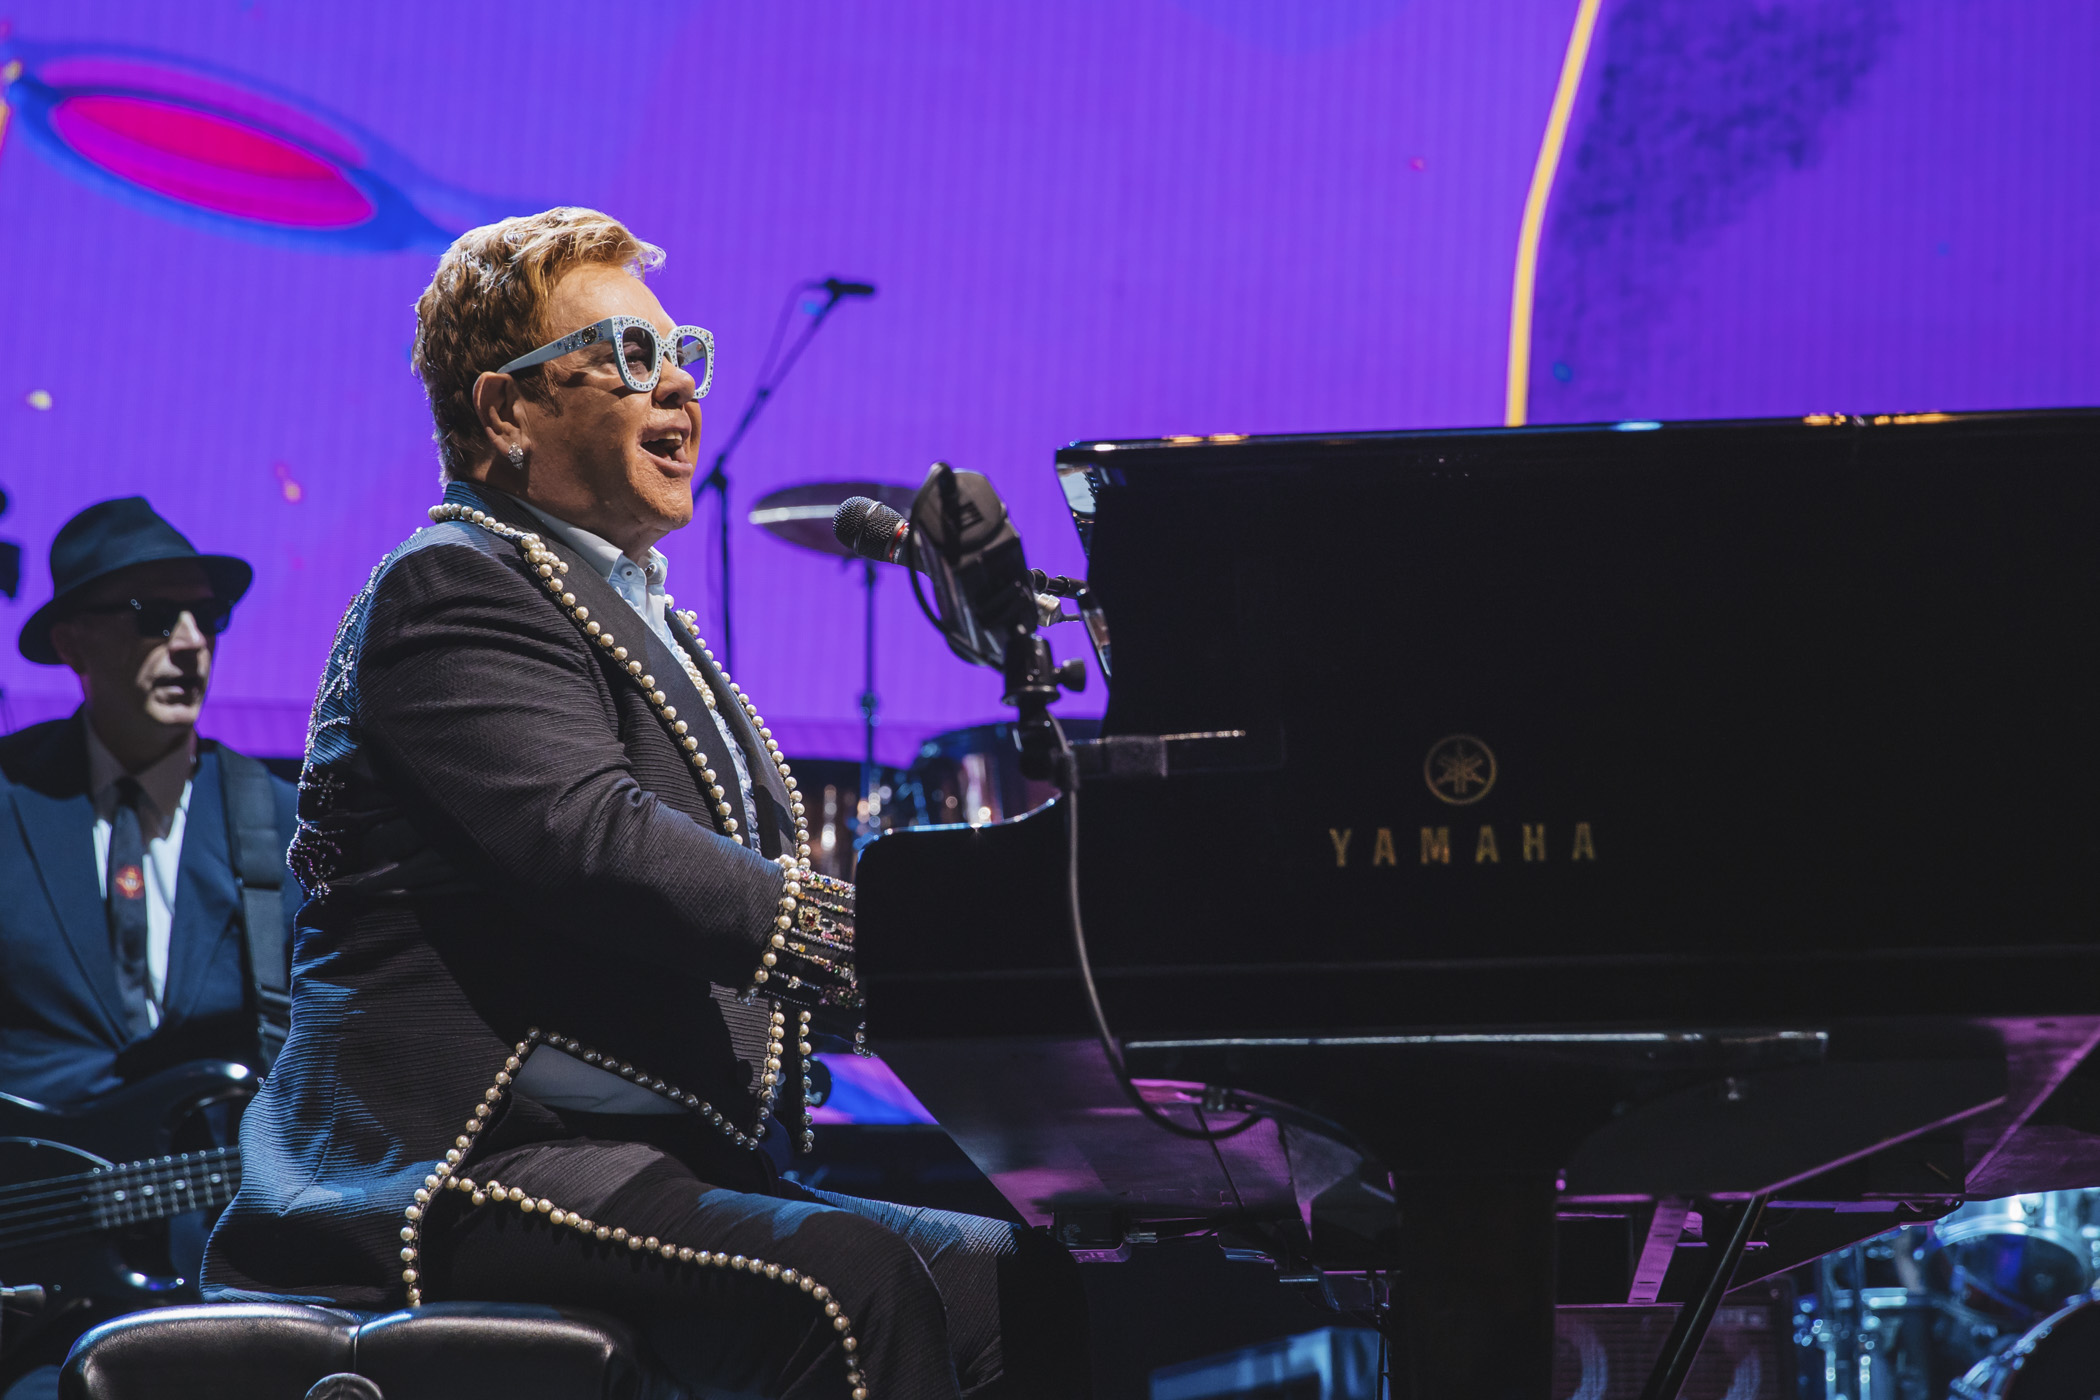 Superstar Elton John brought his { }Farewell Yellow Brick Road tour to the Tacoma Dome for two nights this week (Sept. 17 & 18), here he played hits spanning his 50-year career to a capacity crowd. This tour is slated to be the pop star's final one, ending in two nights at London's O2 Arena in December 2019. (Image: Sunita Martini / Seattle Refined){ }